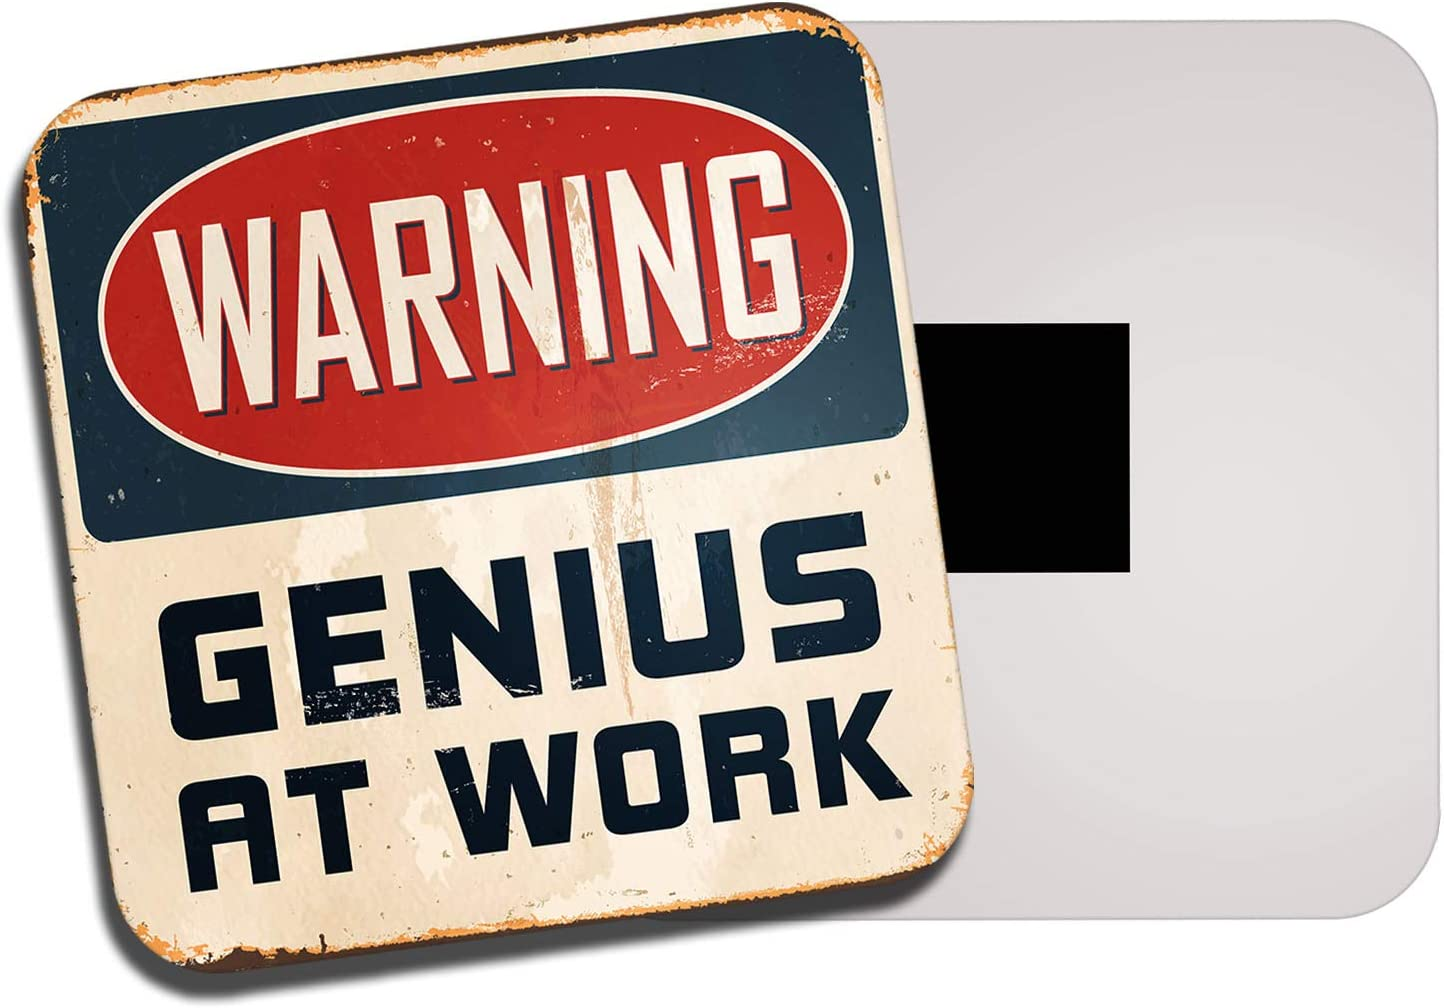 DestinationVinyl Genius at Work Fridge Magnet Grunge Office Secret Santa Student Fun Gift #0116